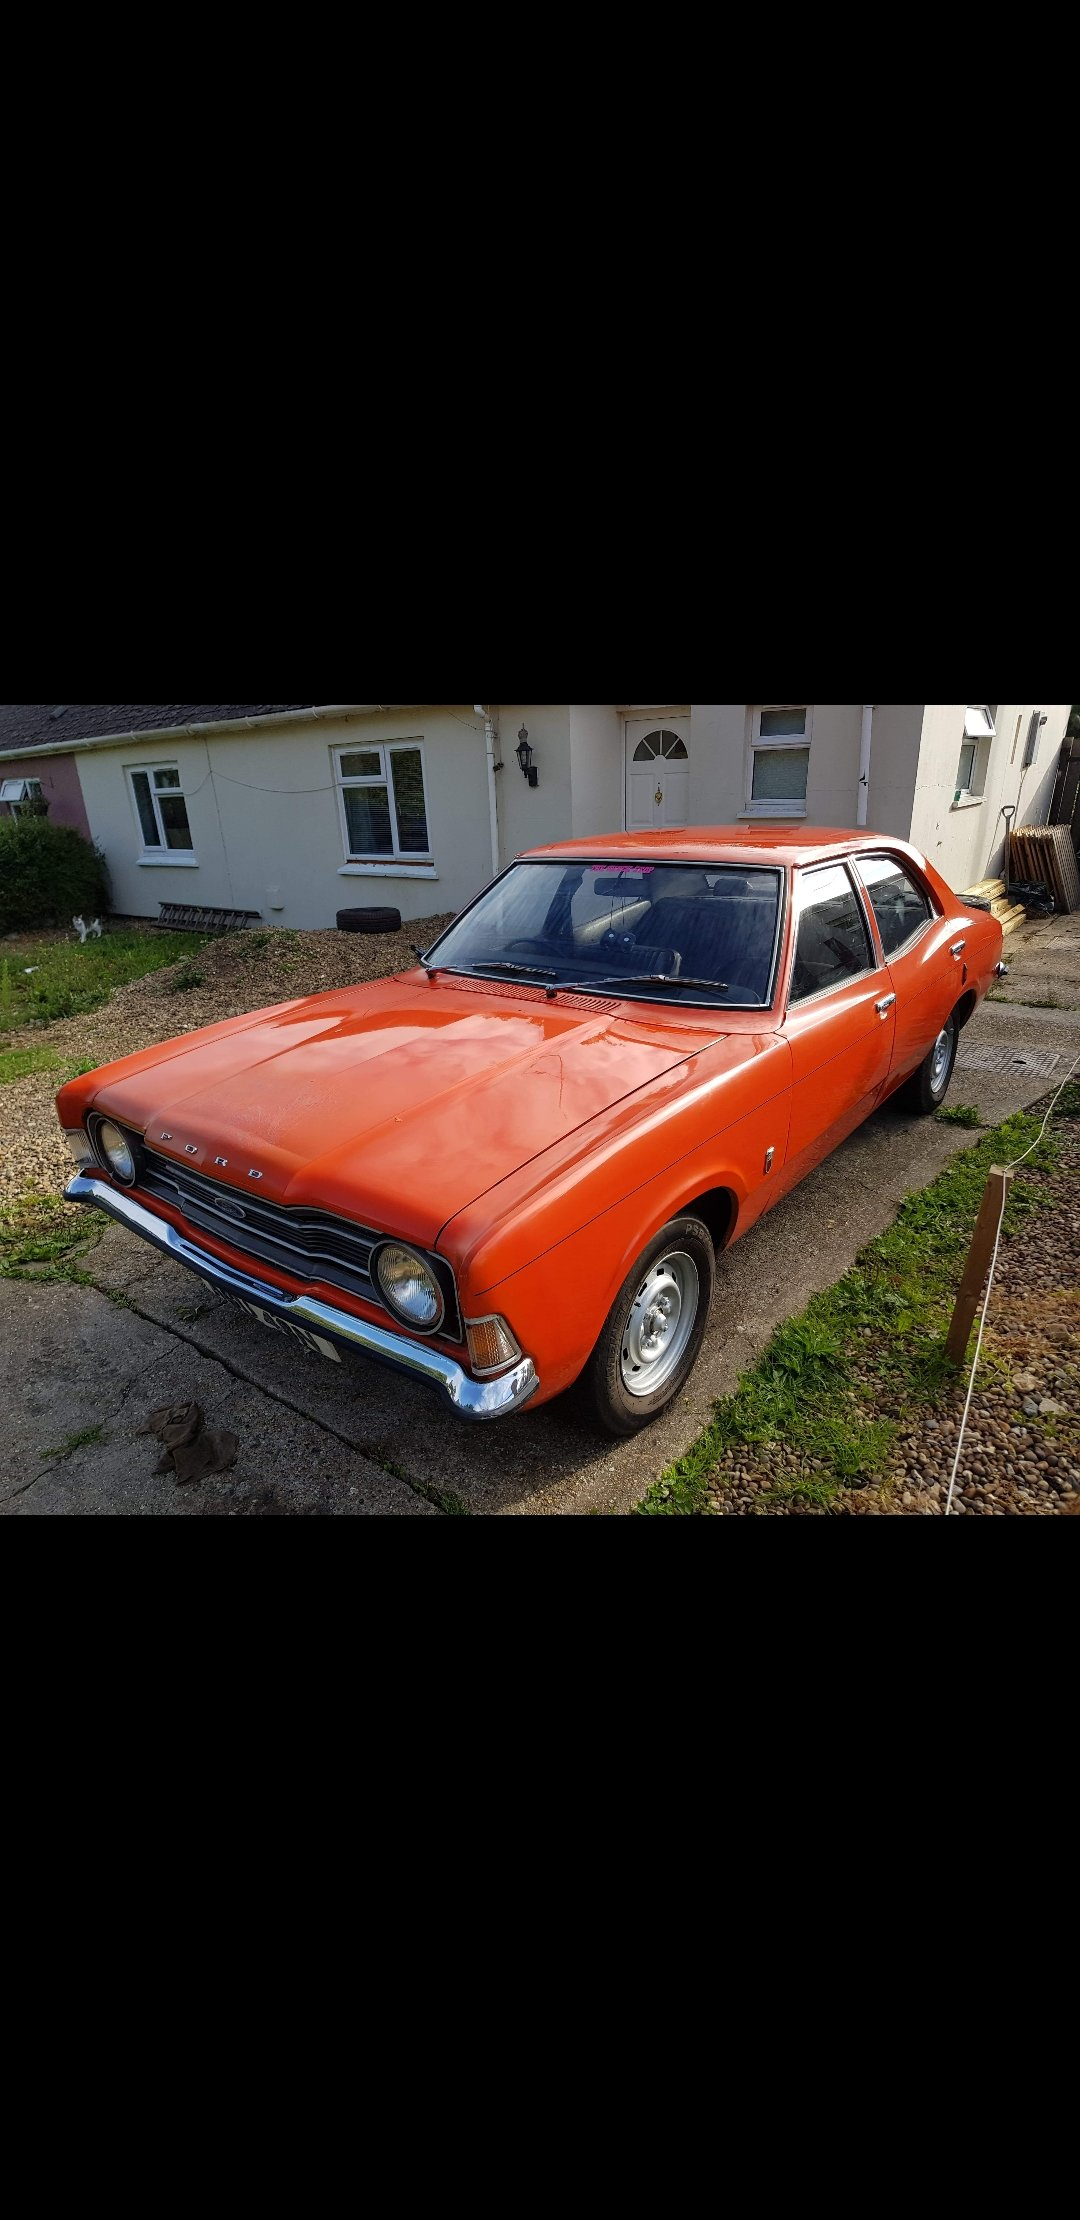 1974 Ford cortina For Sale (picture 2 of 5)